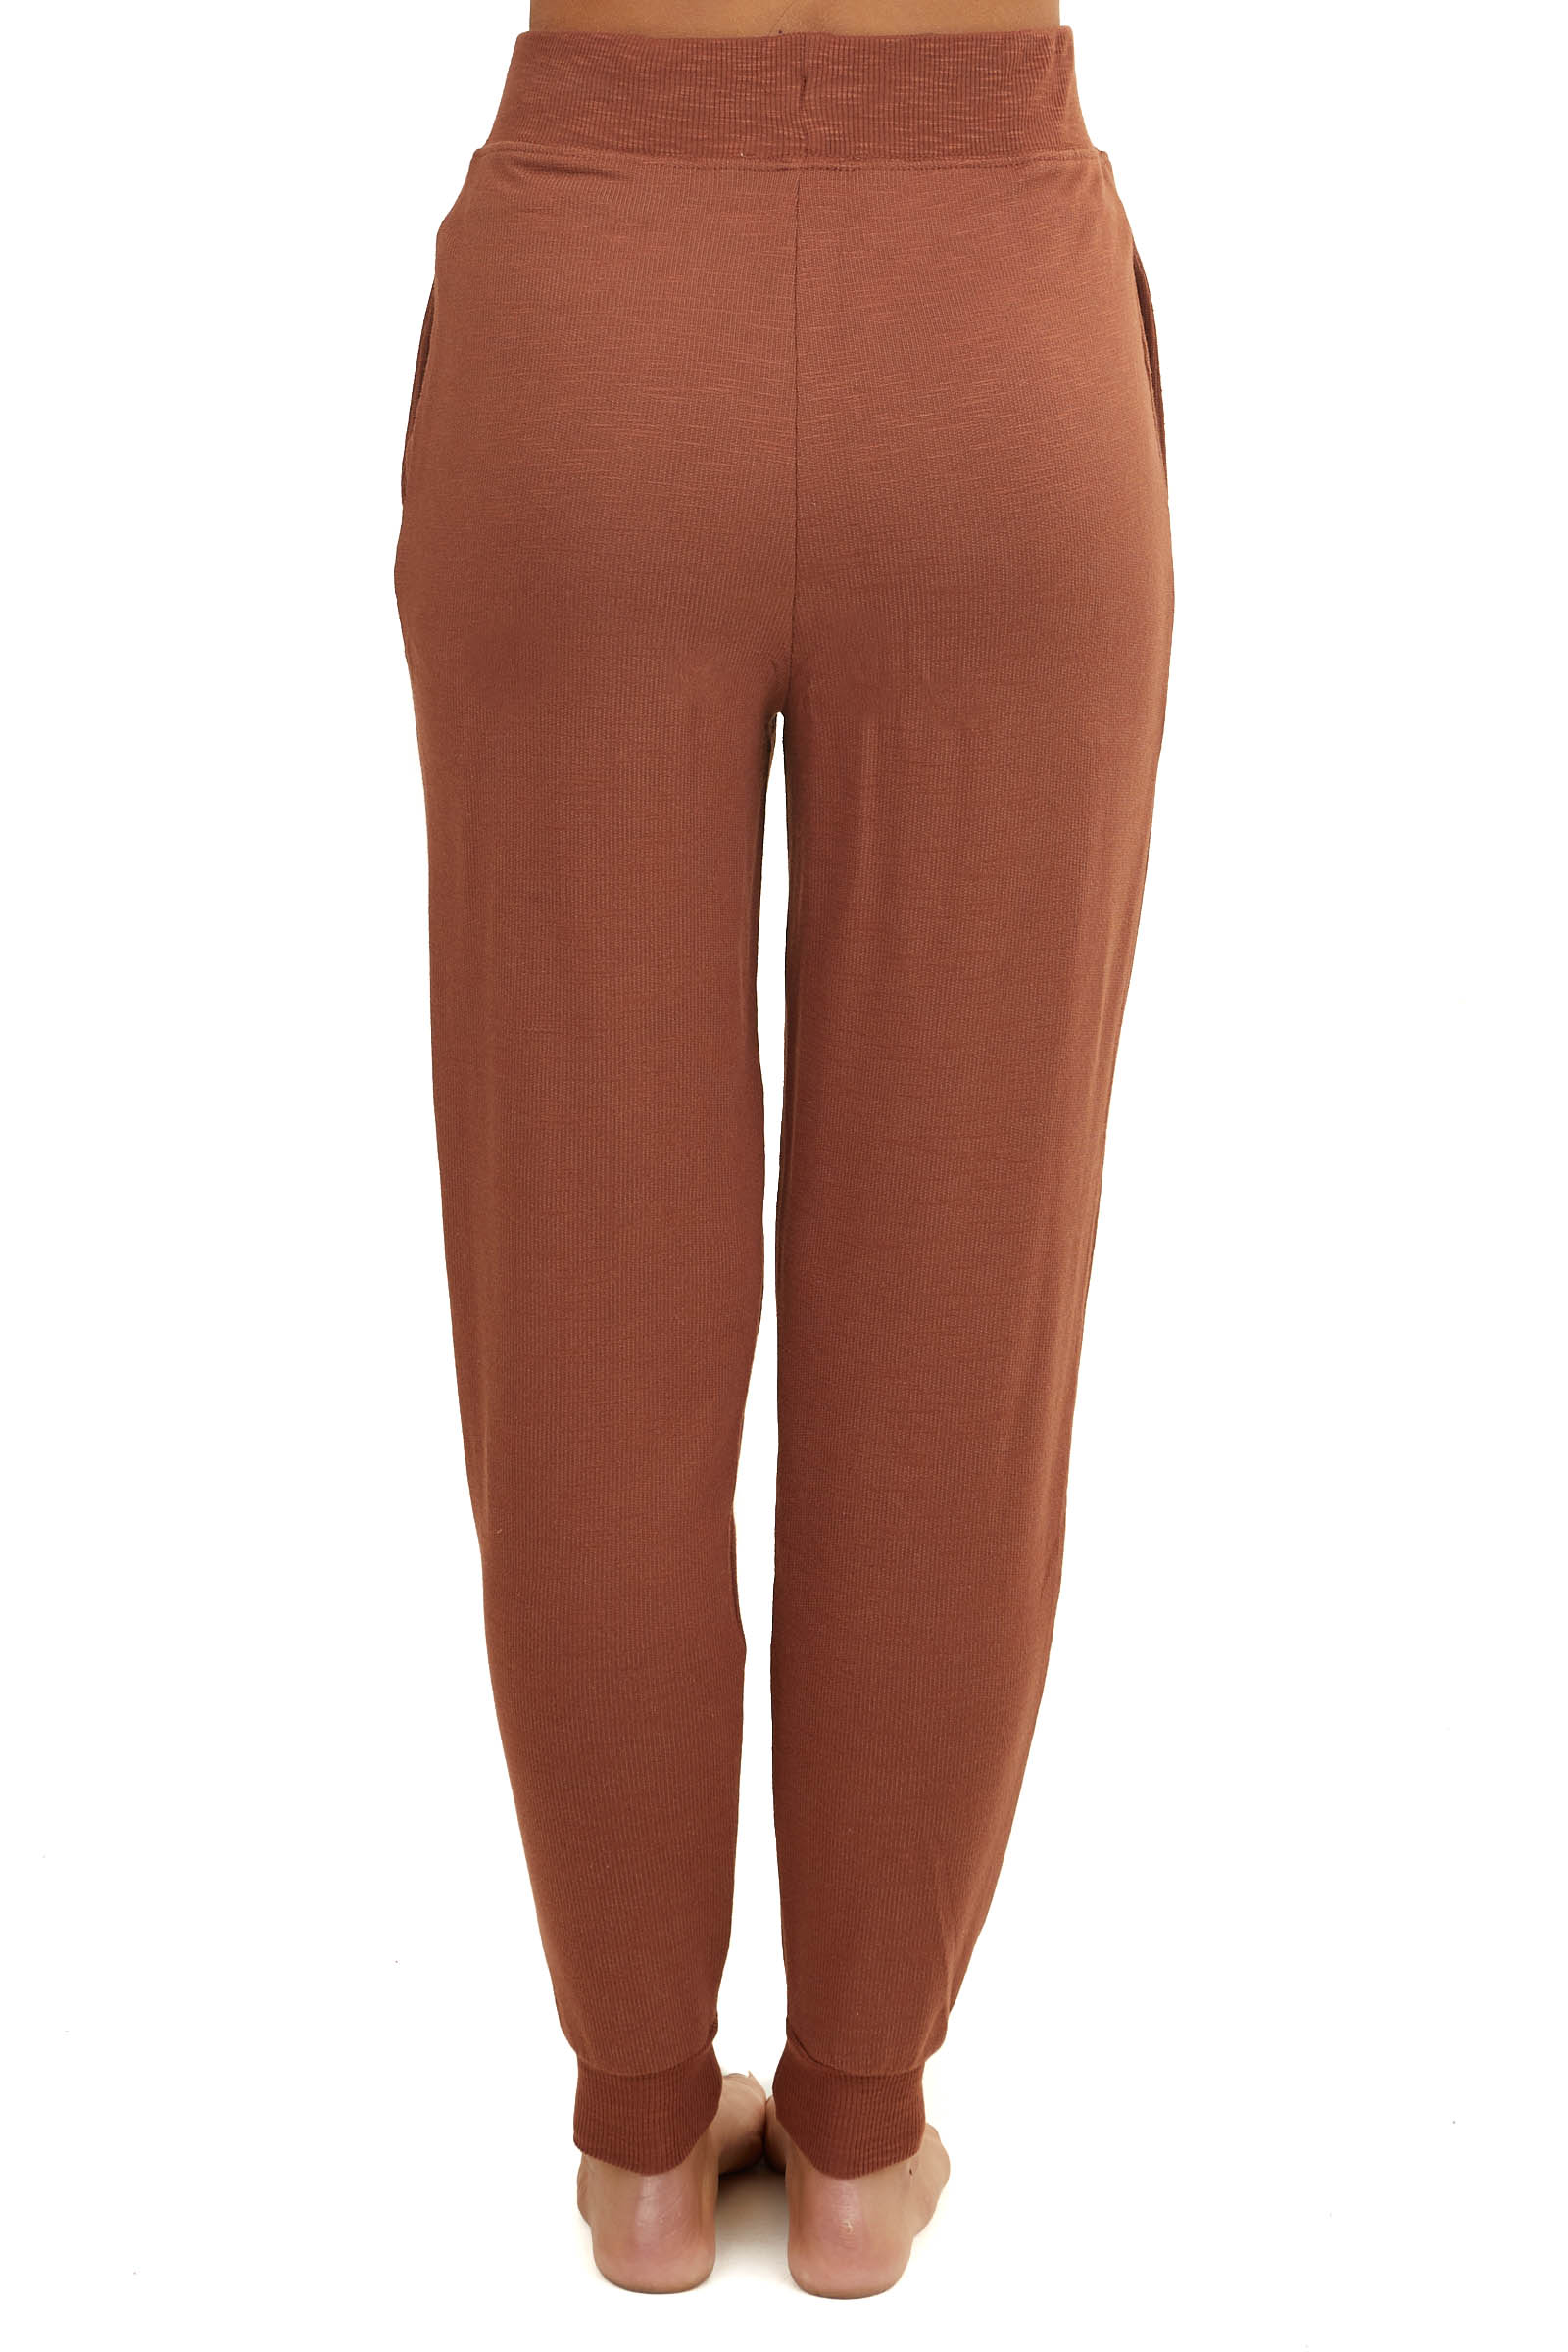 Caramel Knit Joggers with Drawstring and Side Pockets